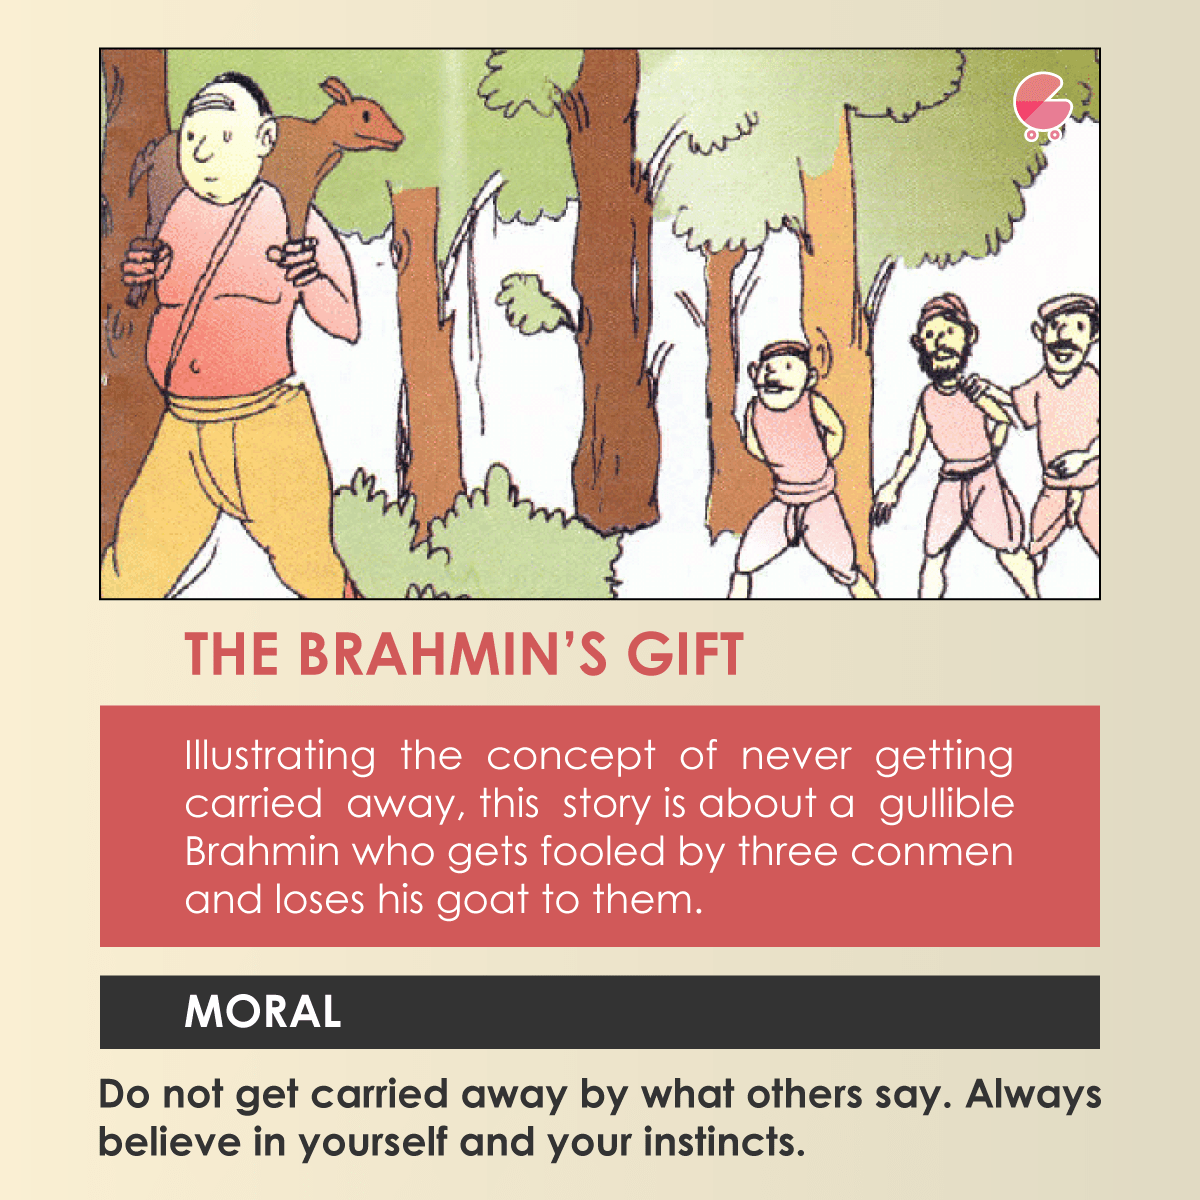 the brahmin's gift